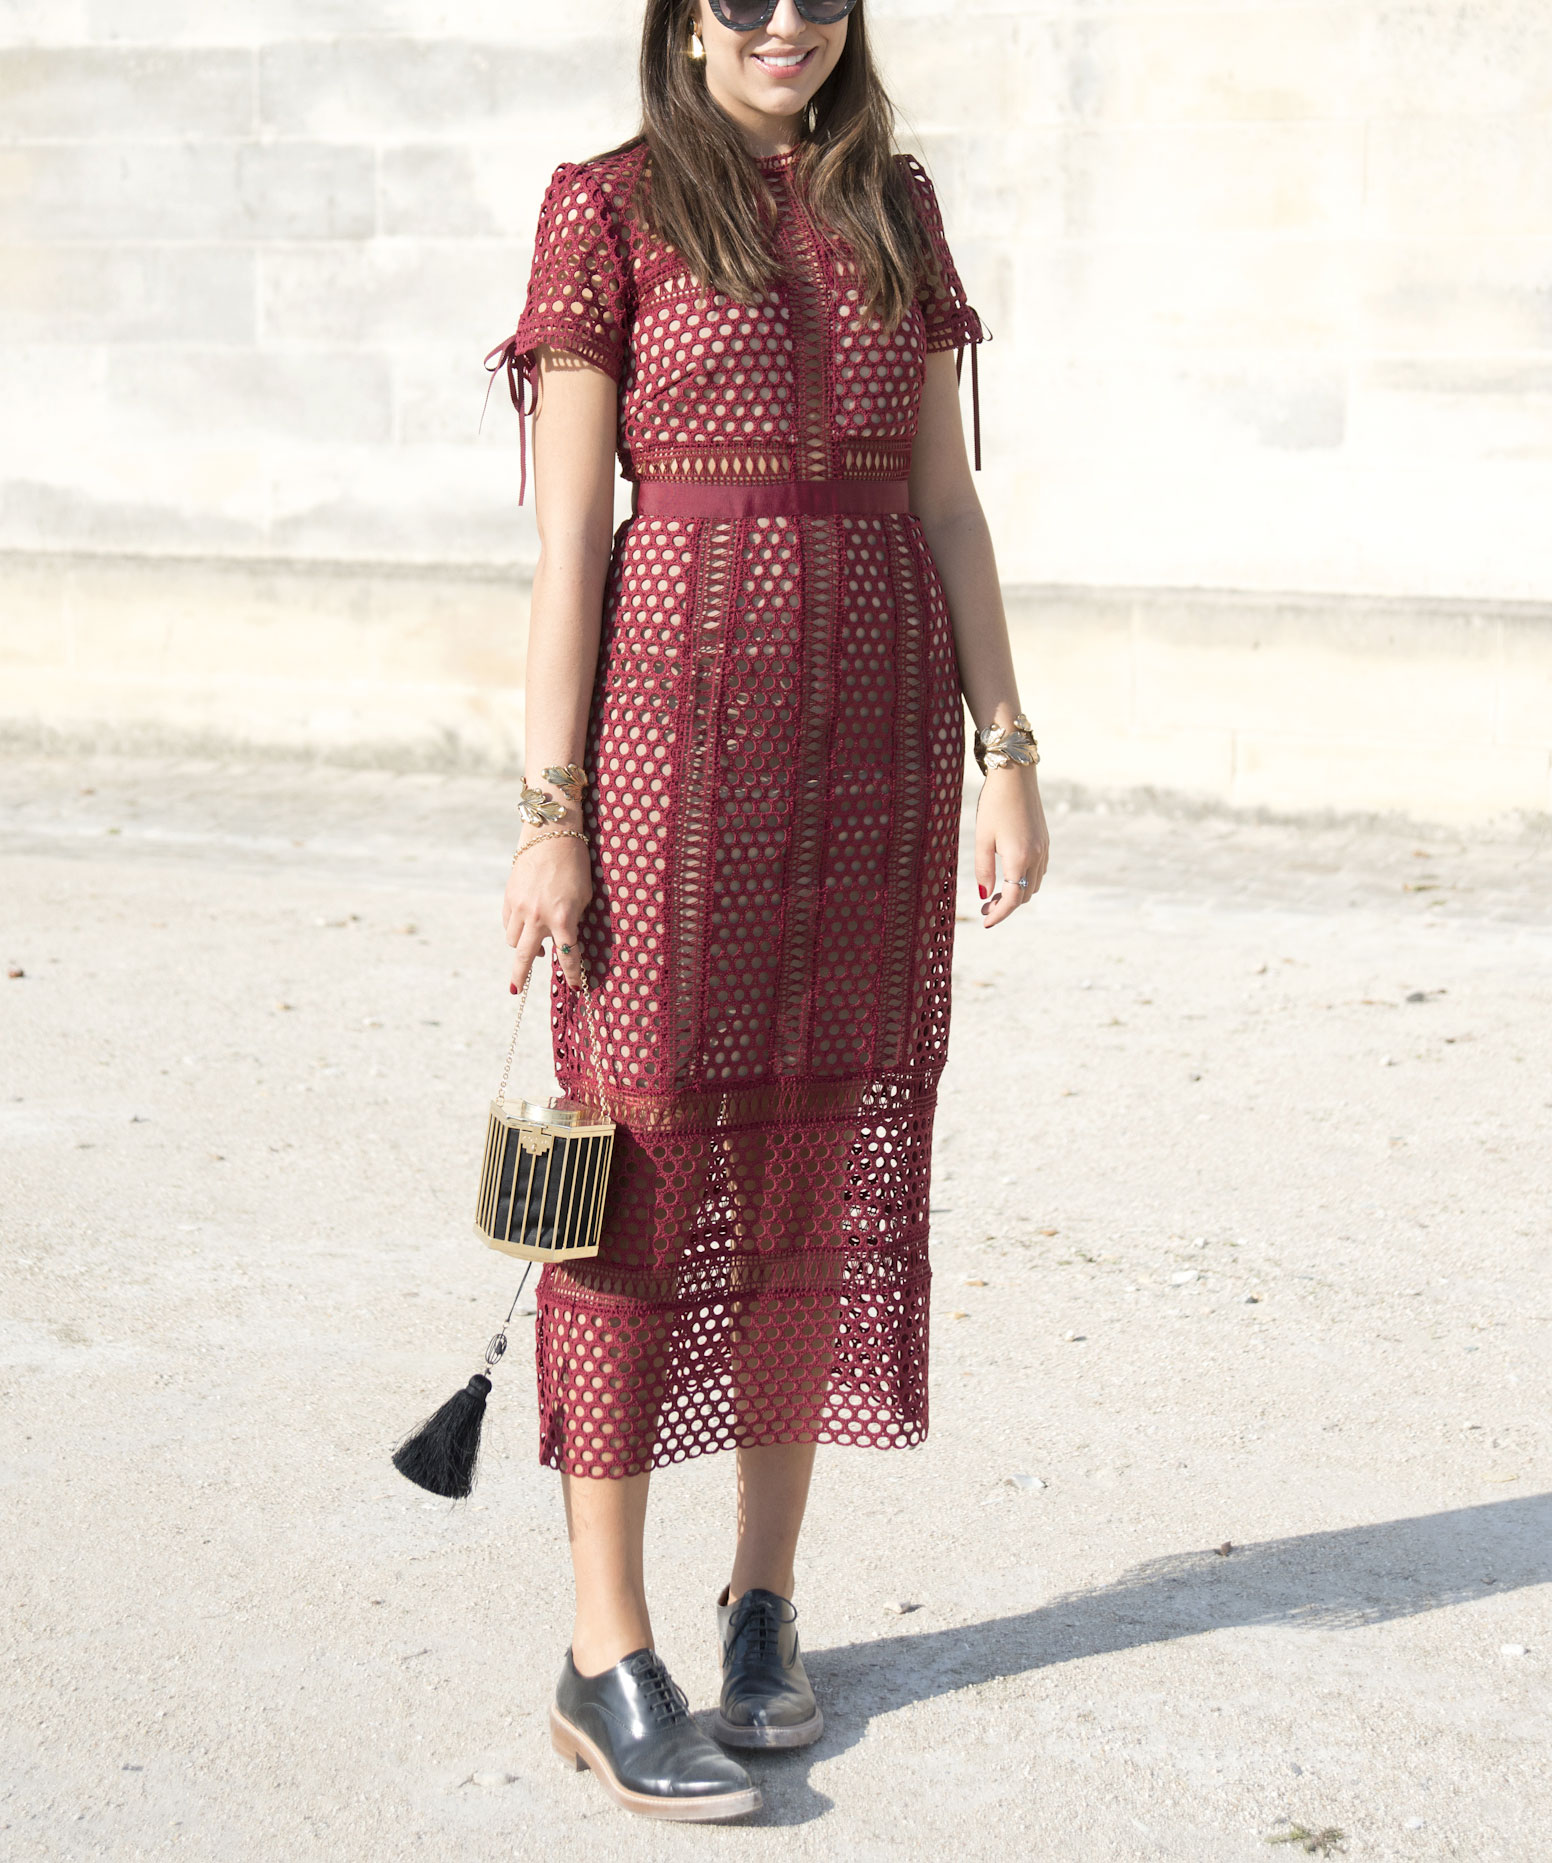 <p>Style with a Dressy Dress</p>